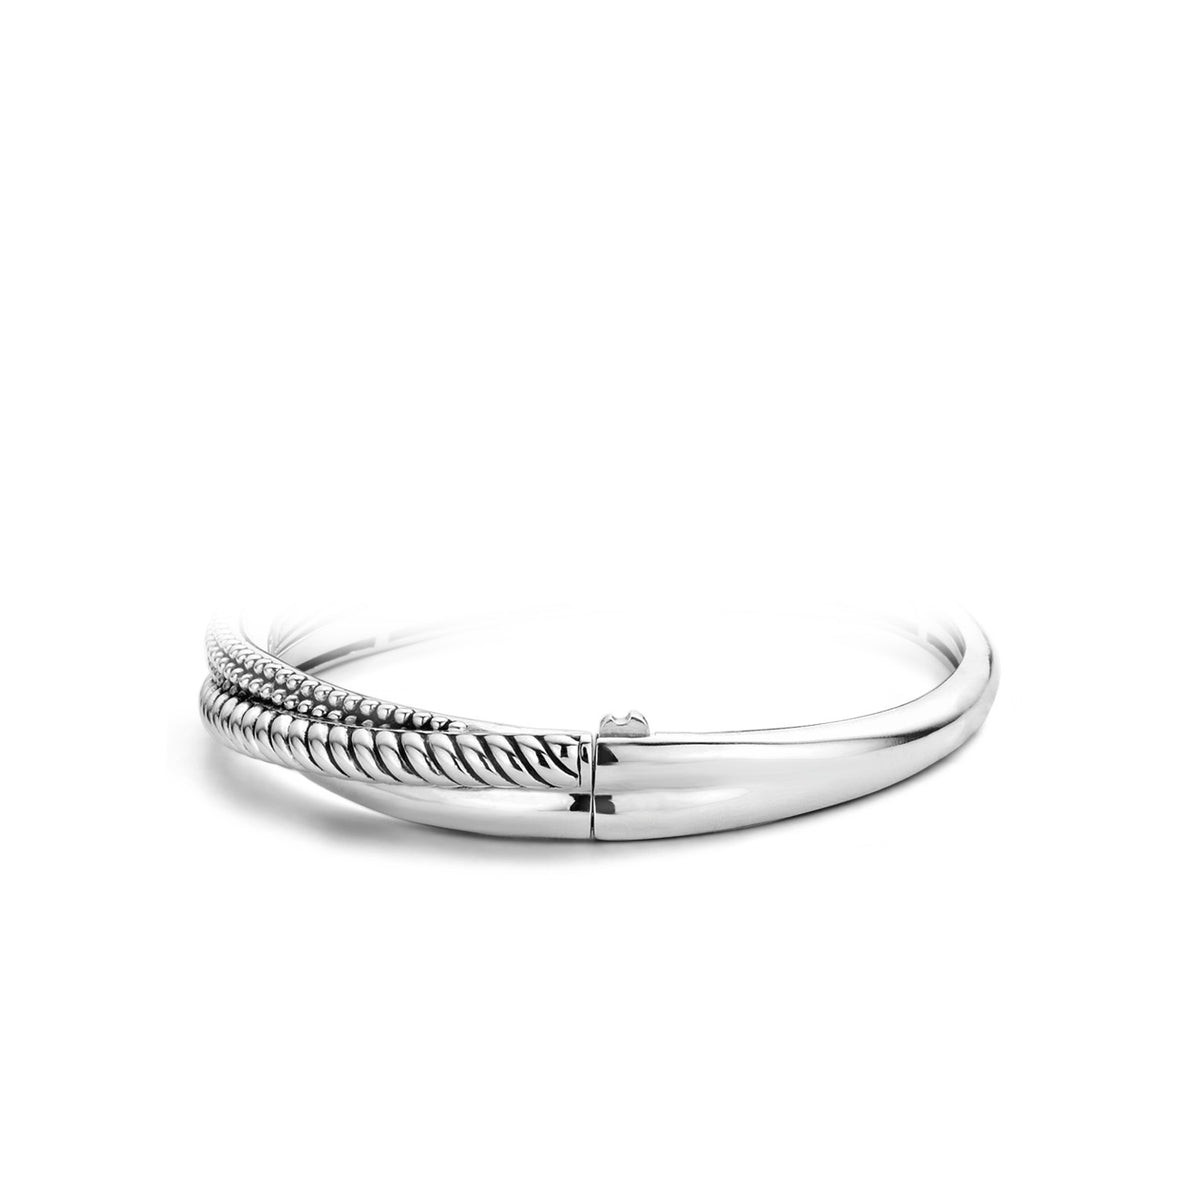 TI SENTO Sterling Silver Twisted Style Hinged Bracelet